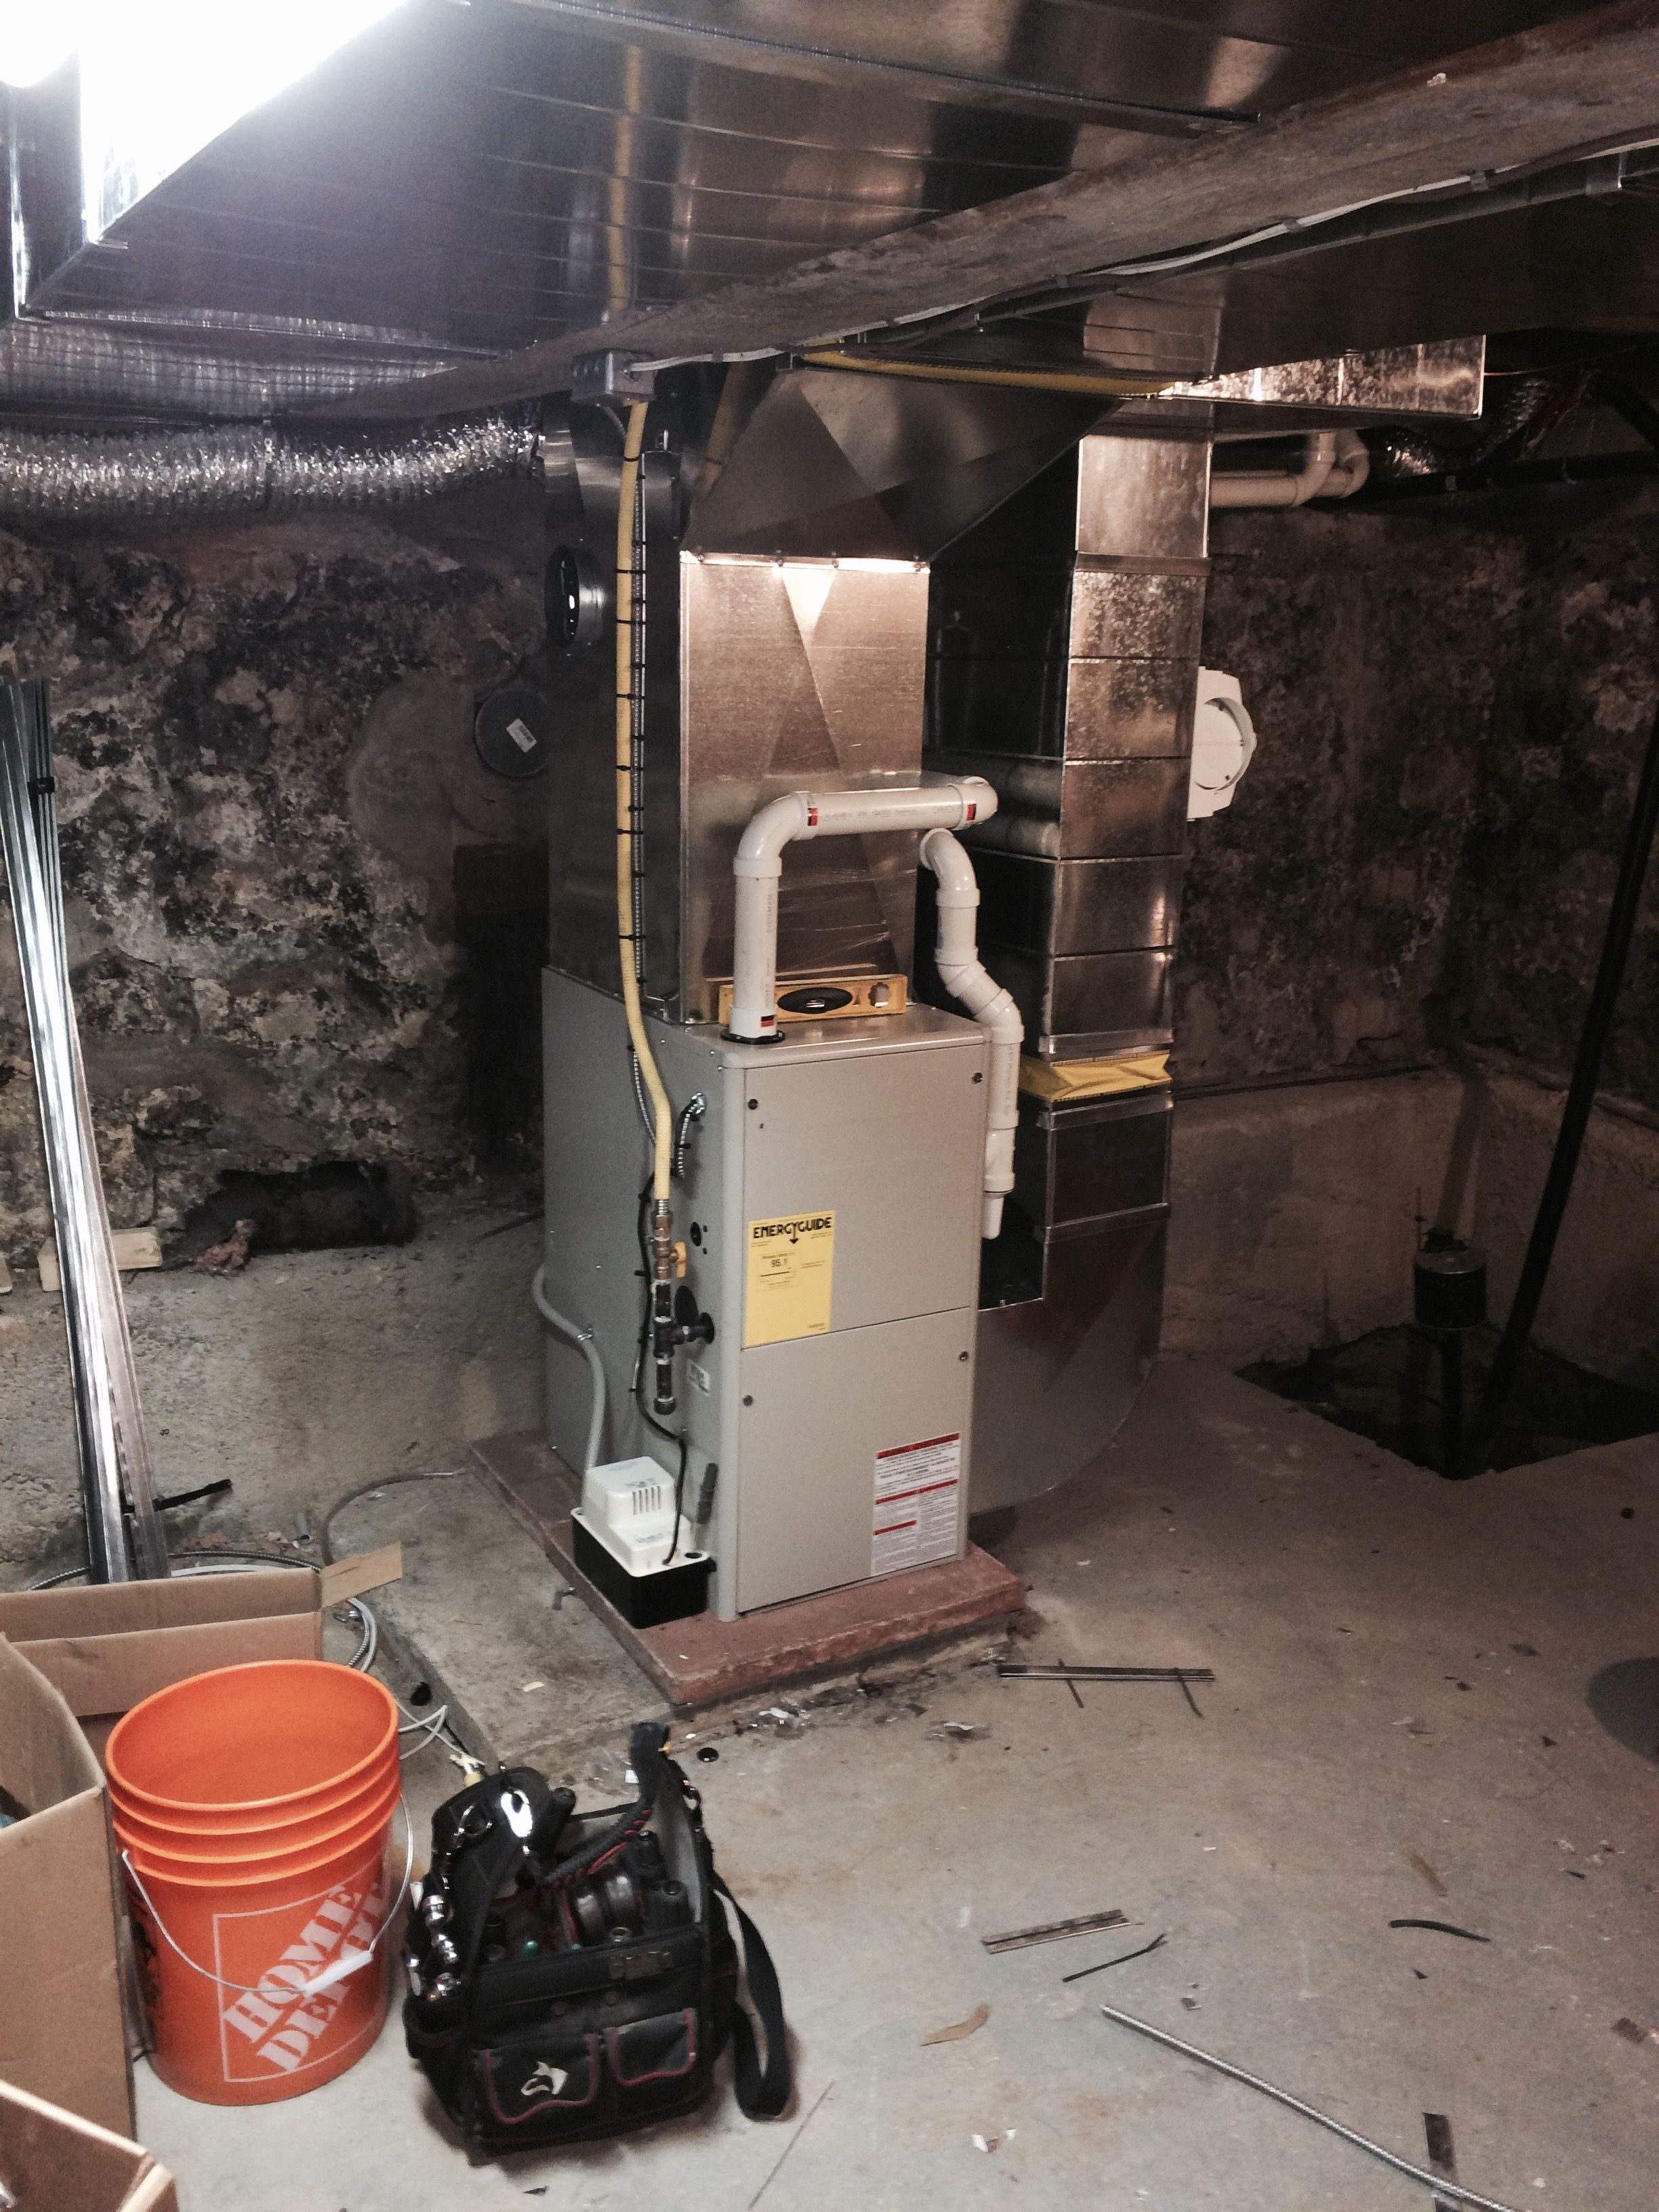 Gibson 95 Afue Natural Gas Fired Furnace Installed In October